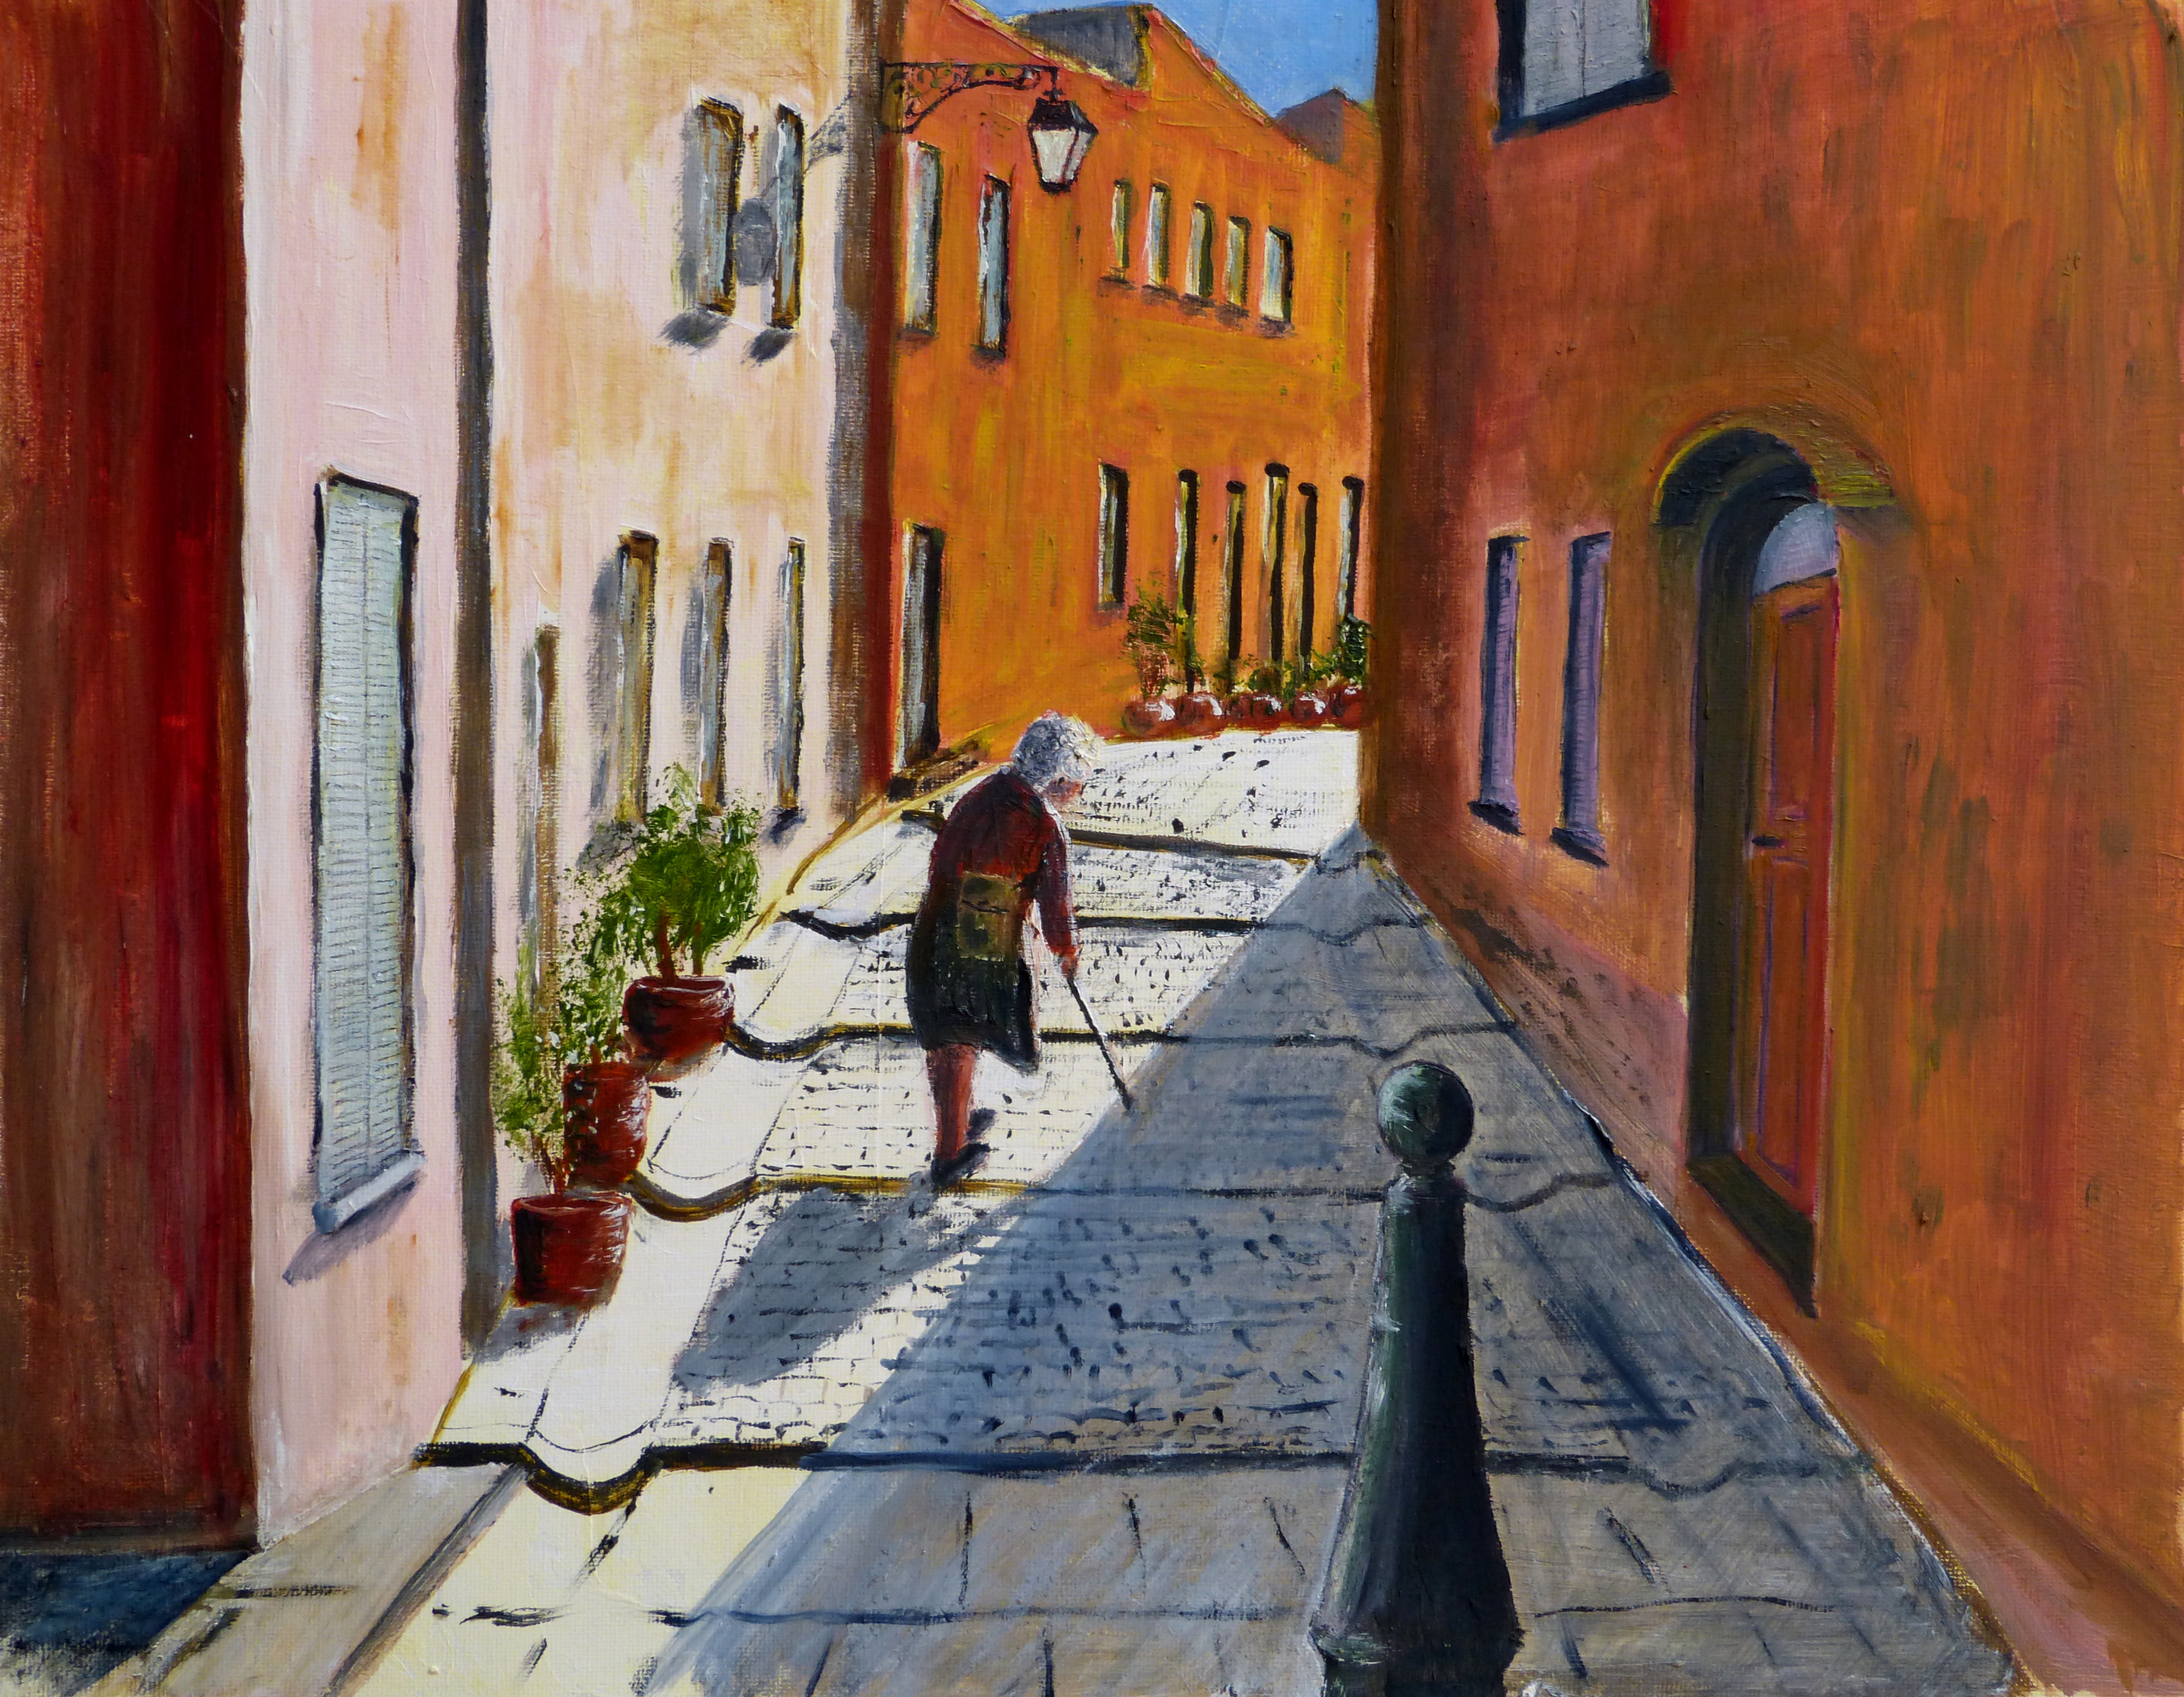 Street scene from Arles, Southern France